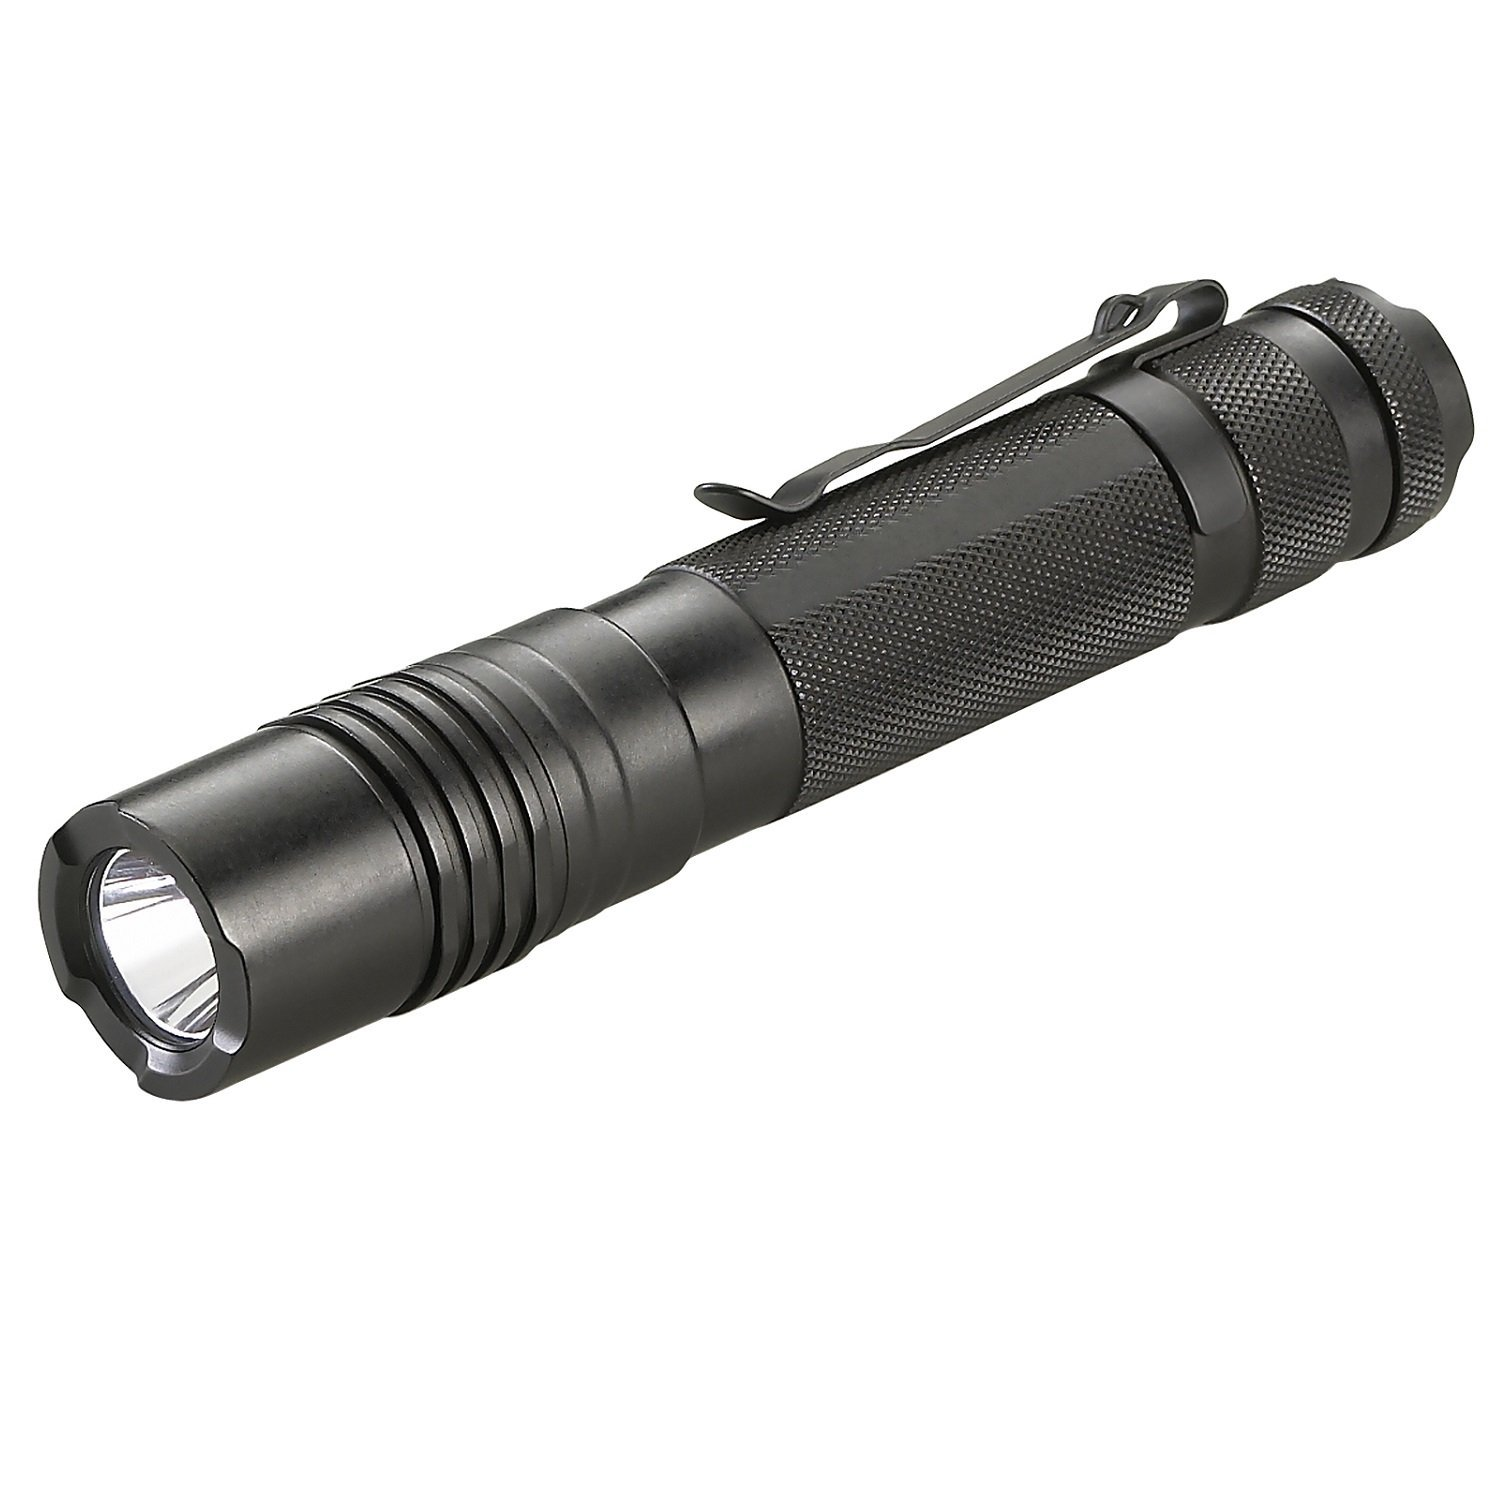 Streamlight 88052 ProTac HL USB Tactical Flashlight, Cord Included